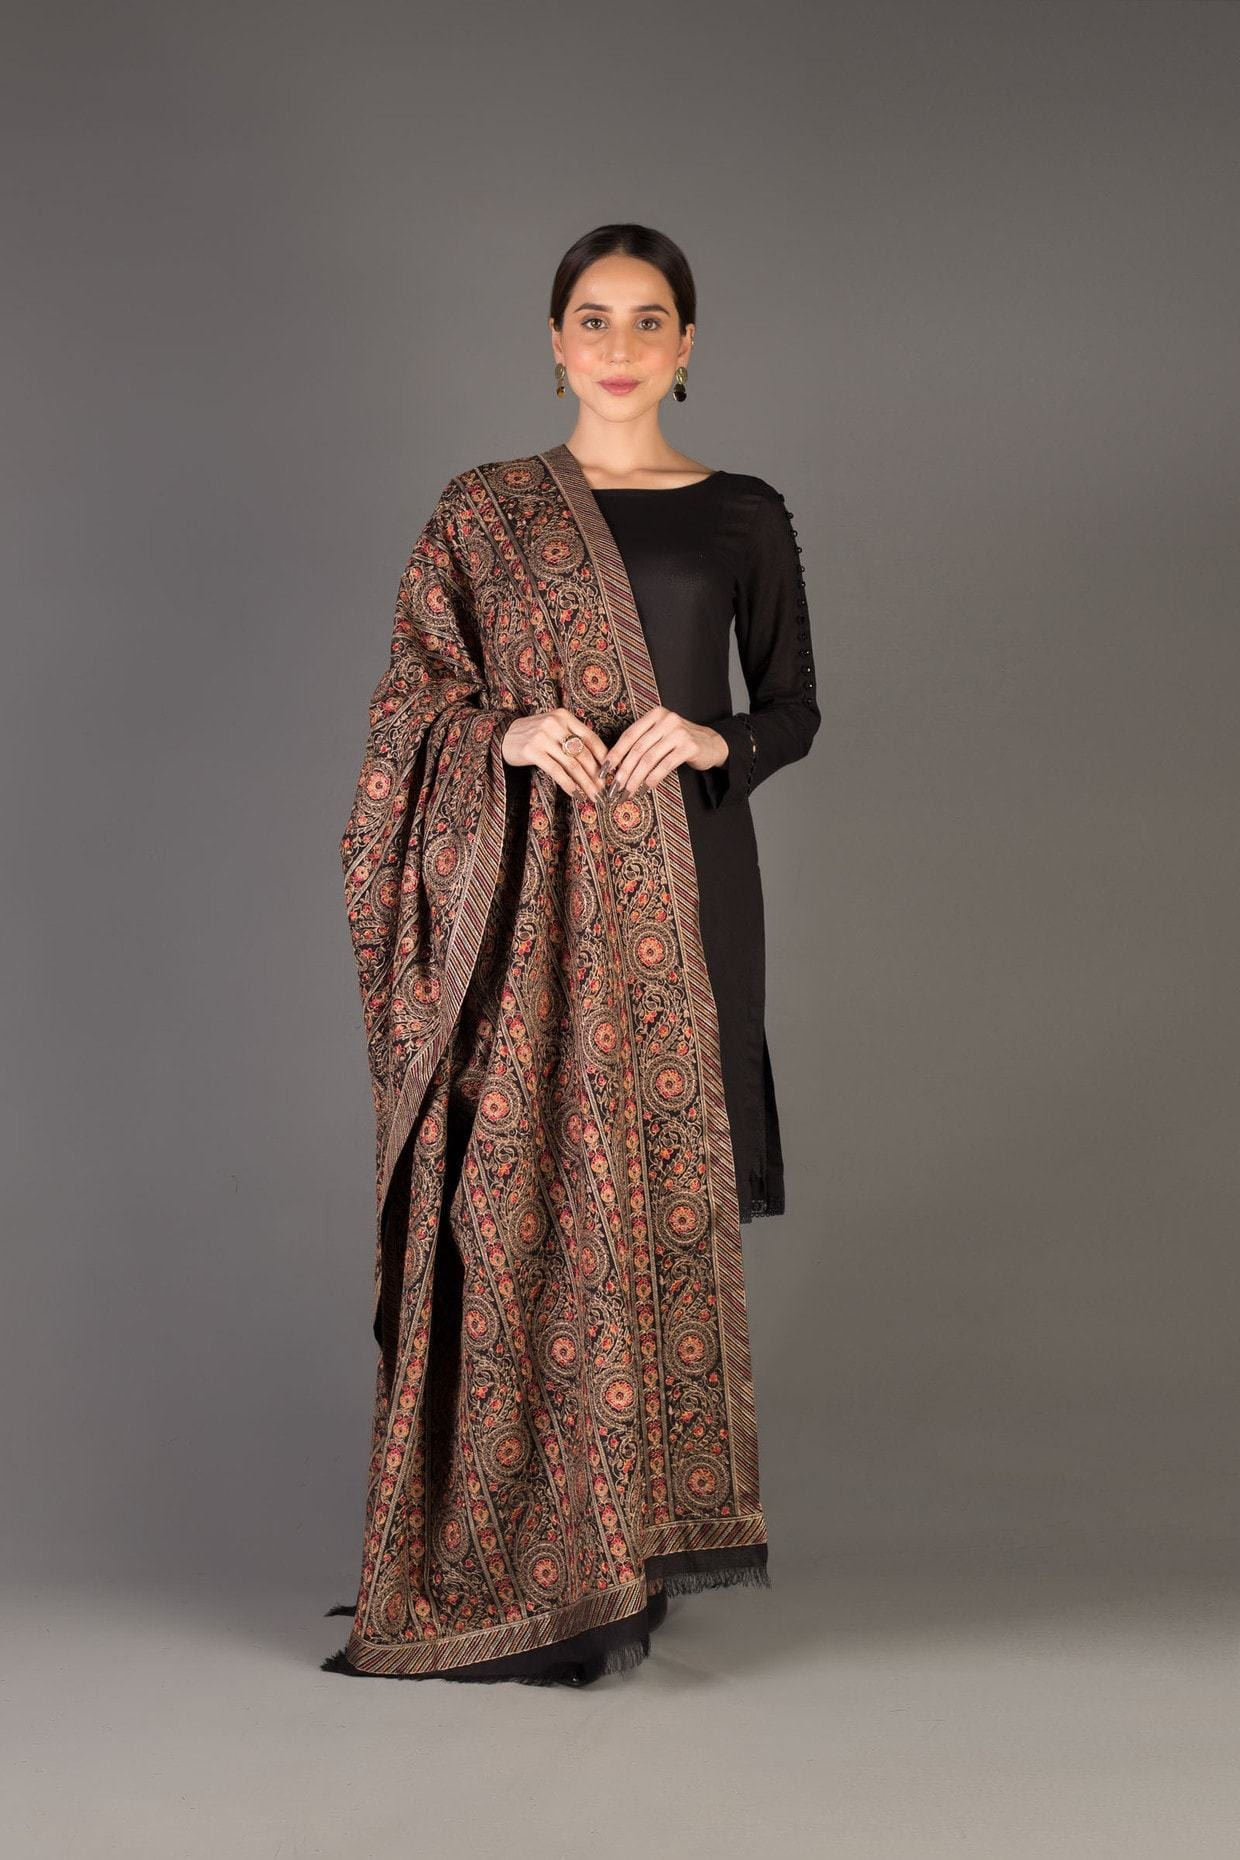 Sarinnah D27-Formal heavy Embroidered Karandi Lawn Shawl